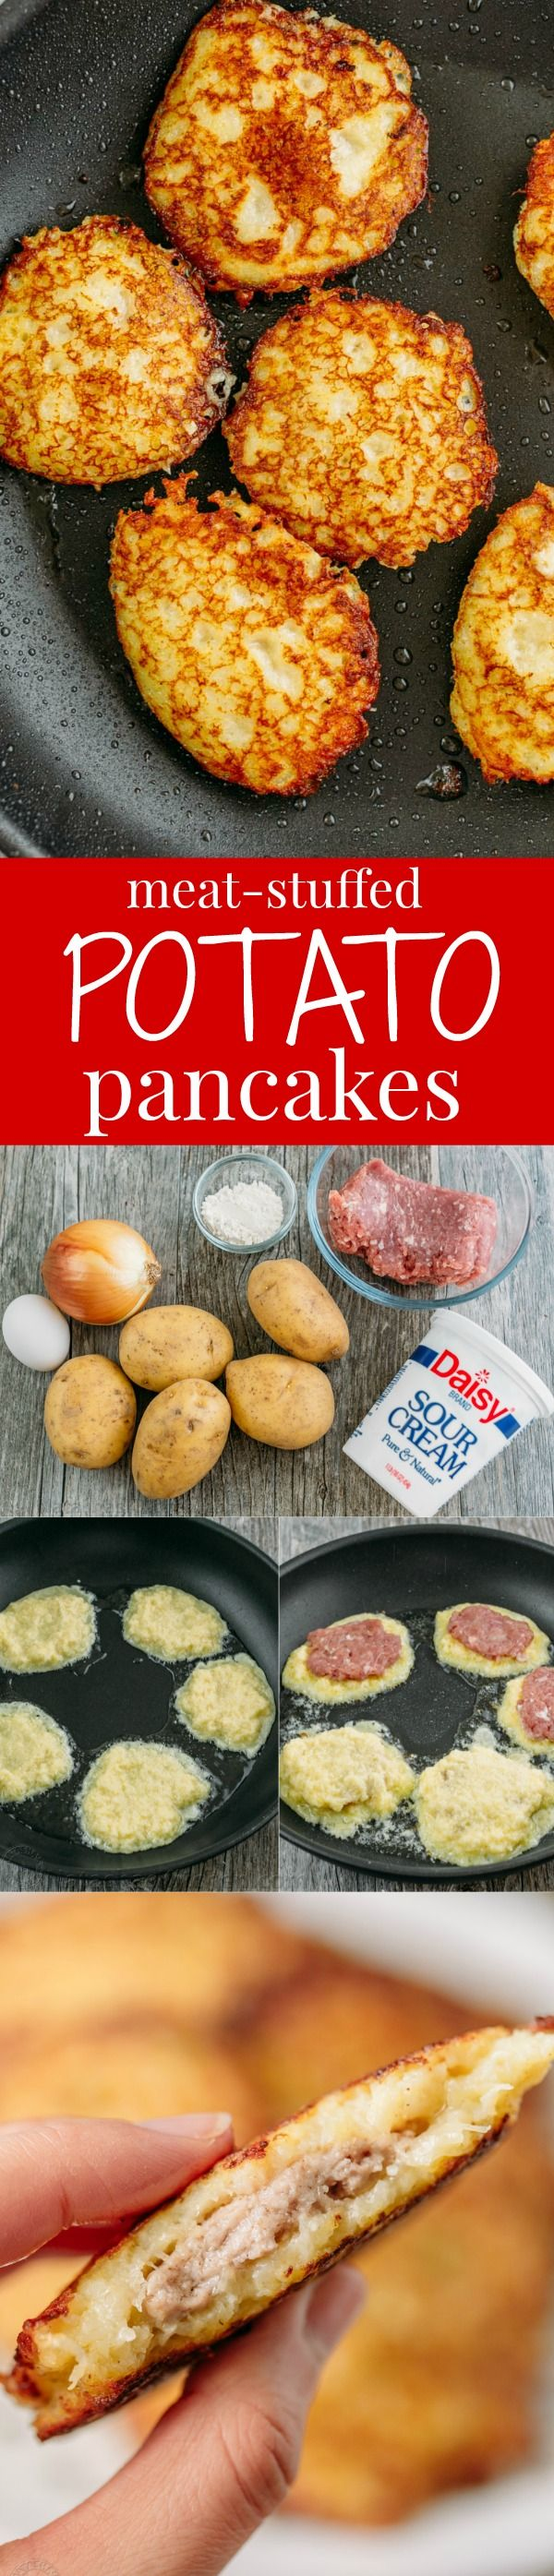 These are classic old world potato pancakes with a surprise inside! Mom always made these draniki growing up. Yummy for breakfast, lunch or dinner!